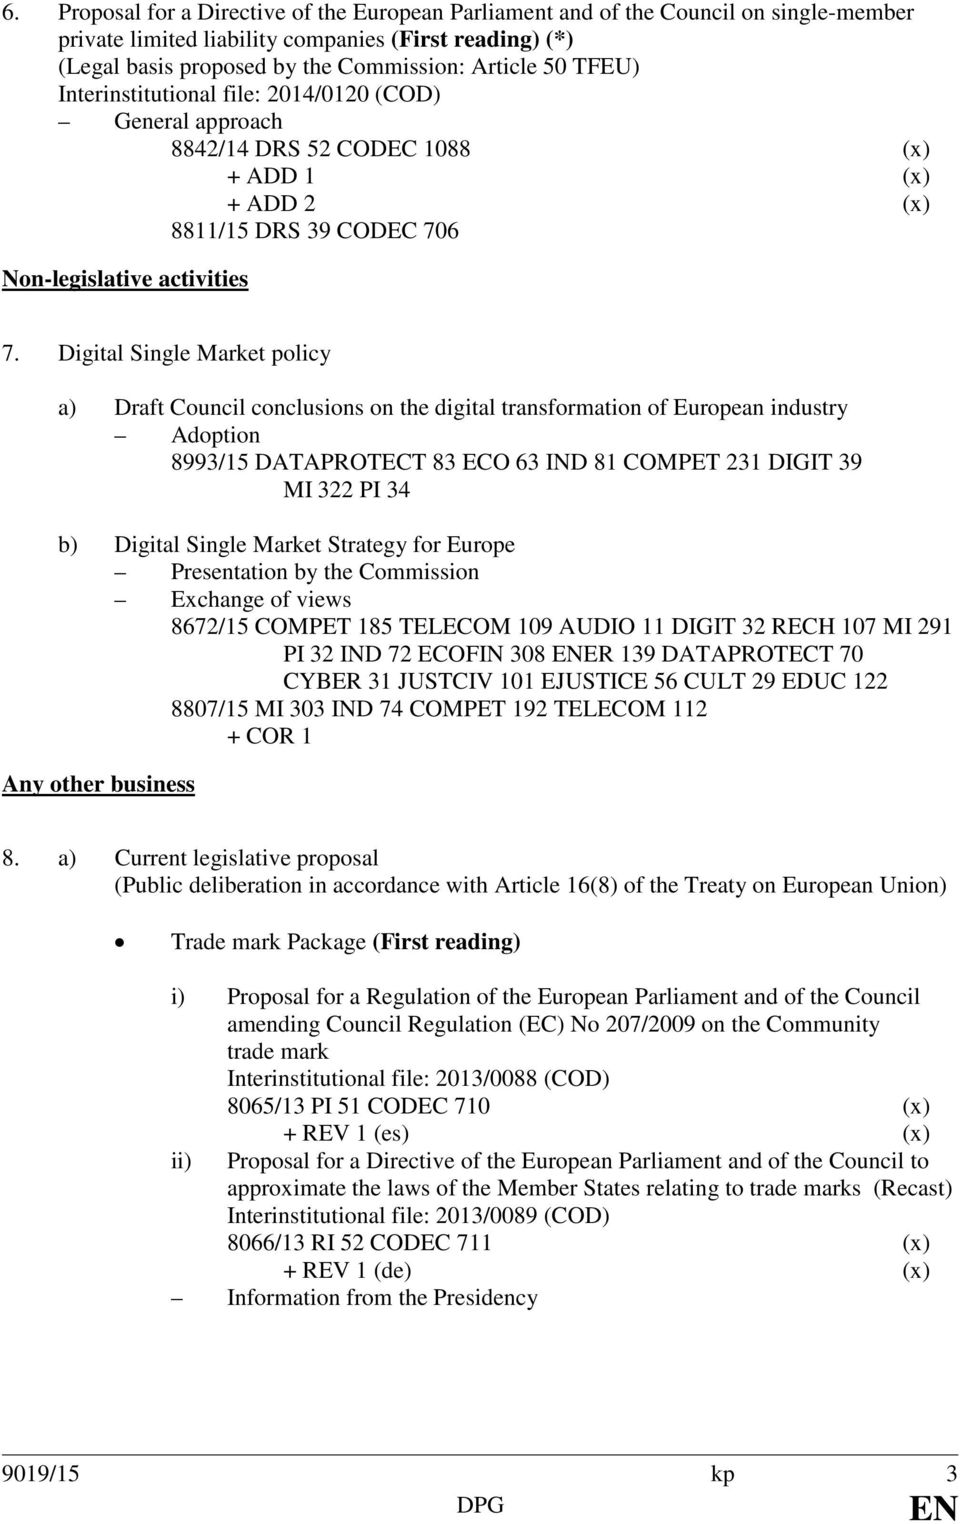 Digital Single Market policy a) Draft Council conclusions on the digital transformation of European industry 8993/15 DATAPROTECT 83 ECO 63 IND 81 COMPET 231 DIGIT 39 MI 322 PI 34 b) Digital Single